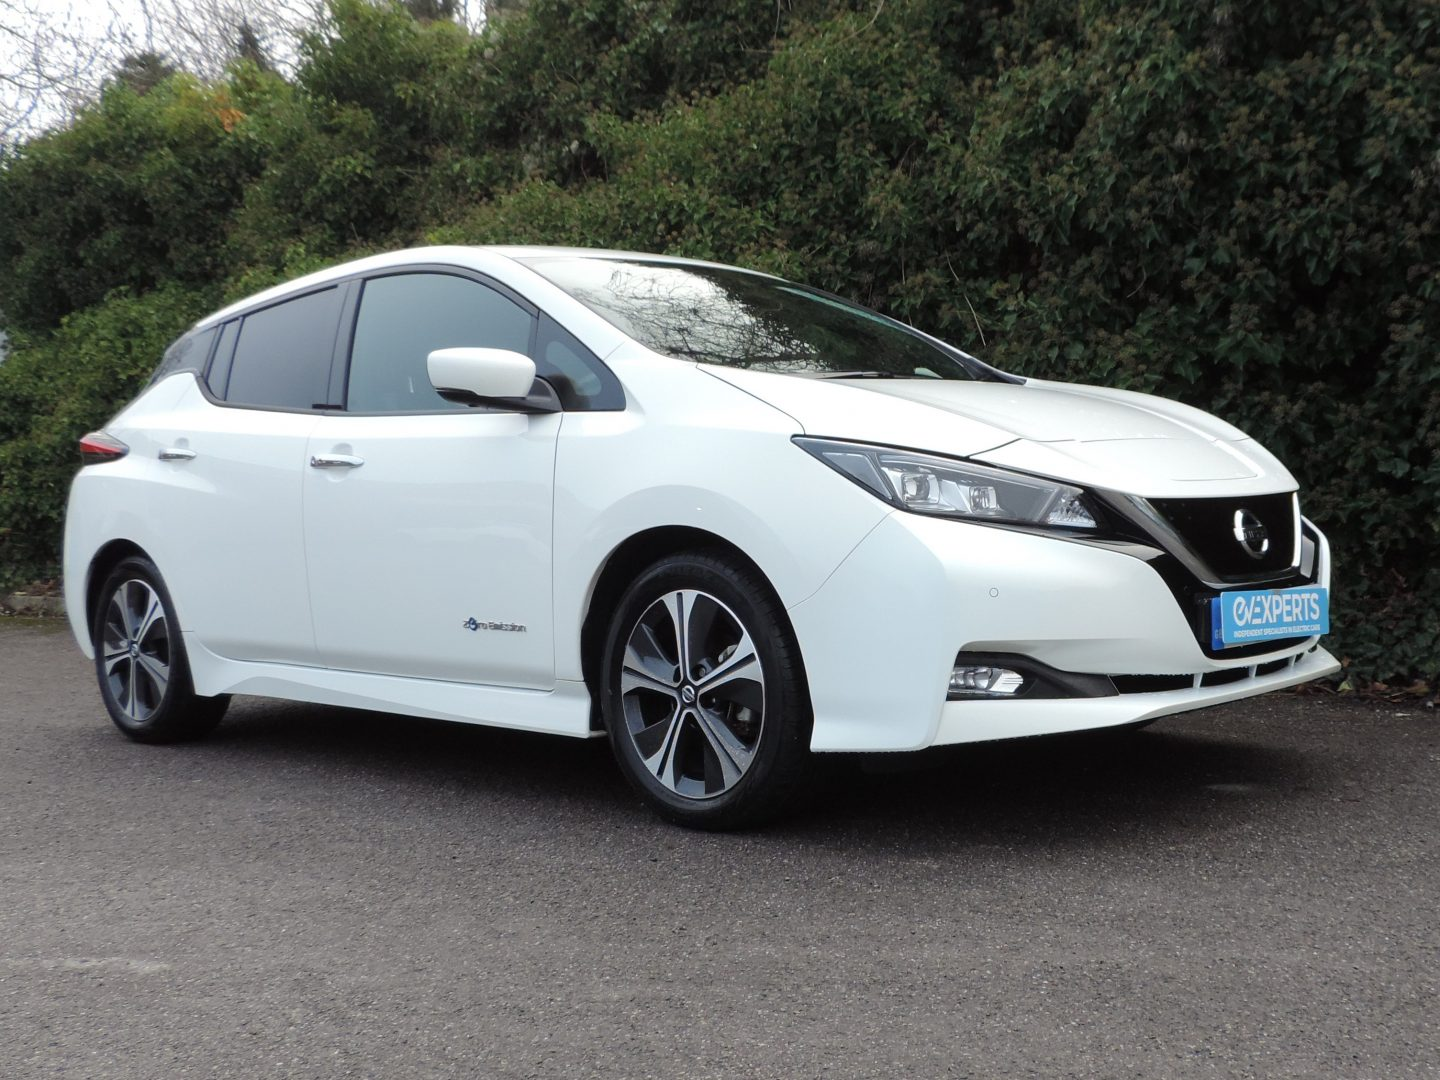 Nissan Leaf 40kWh Tekna (2018) Artic White / Black Leather